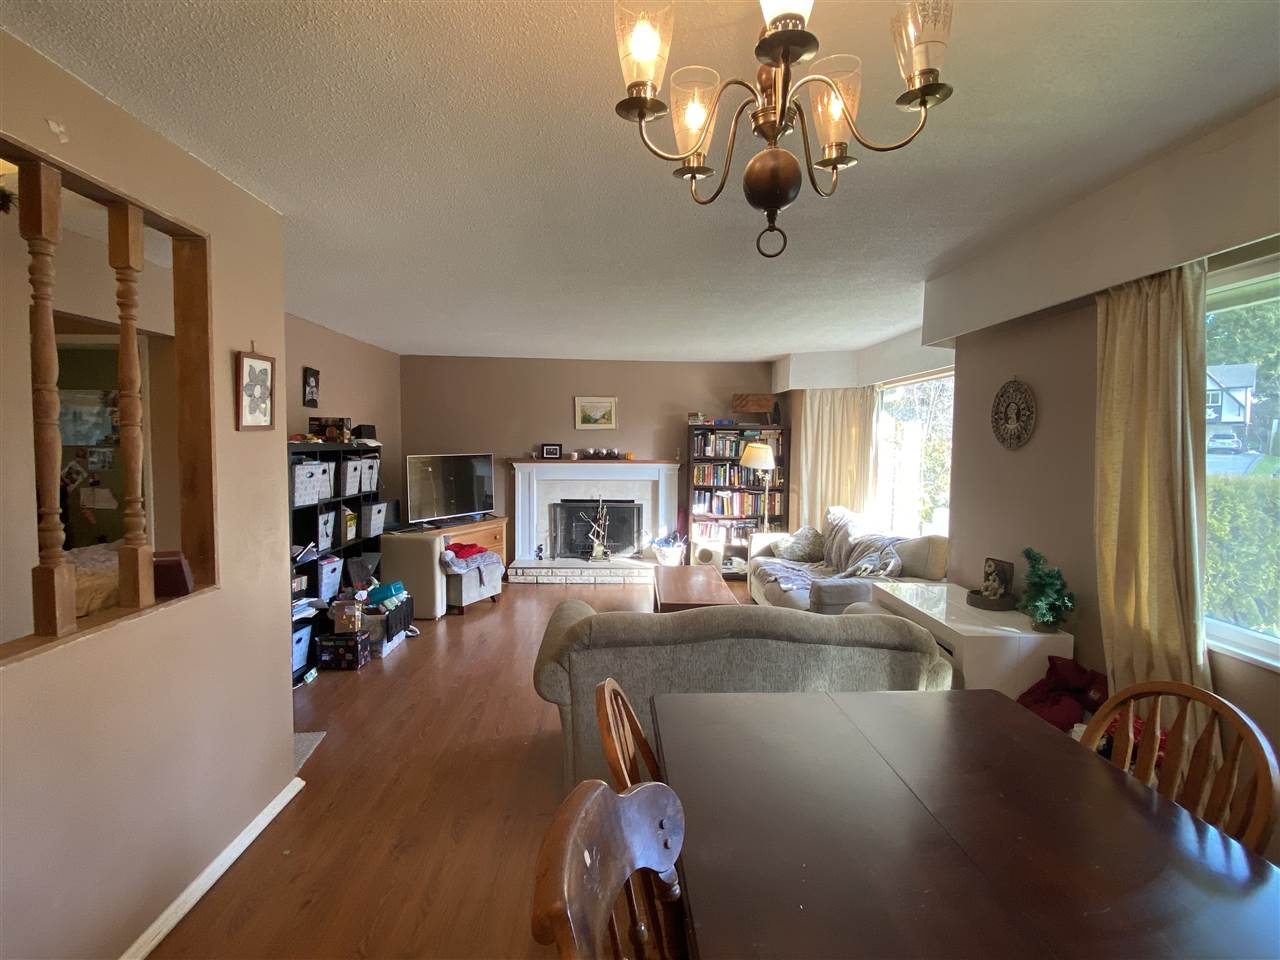 962 FREDERICK PLACE - Lynn Valley House/Single Family for sale, 4 Bedrooms (R2541307) - #11